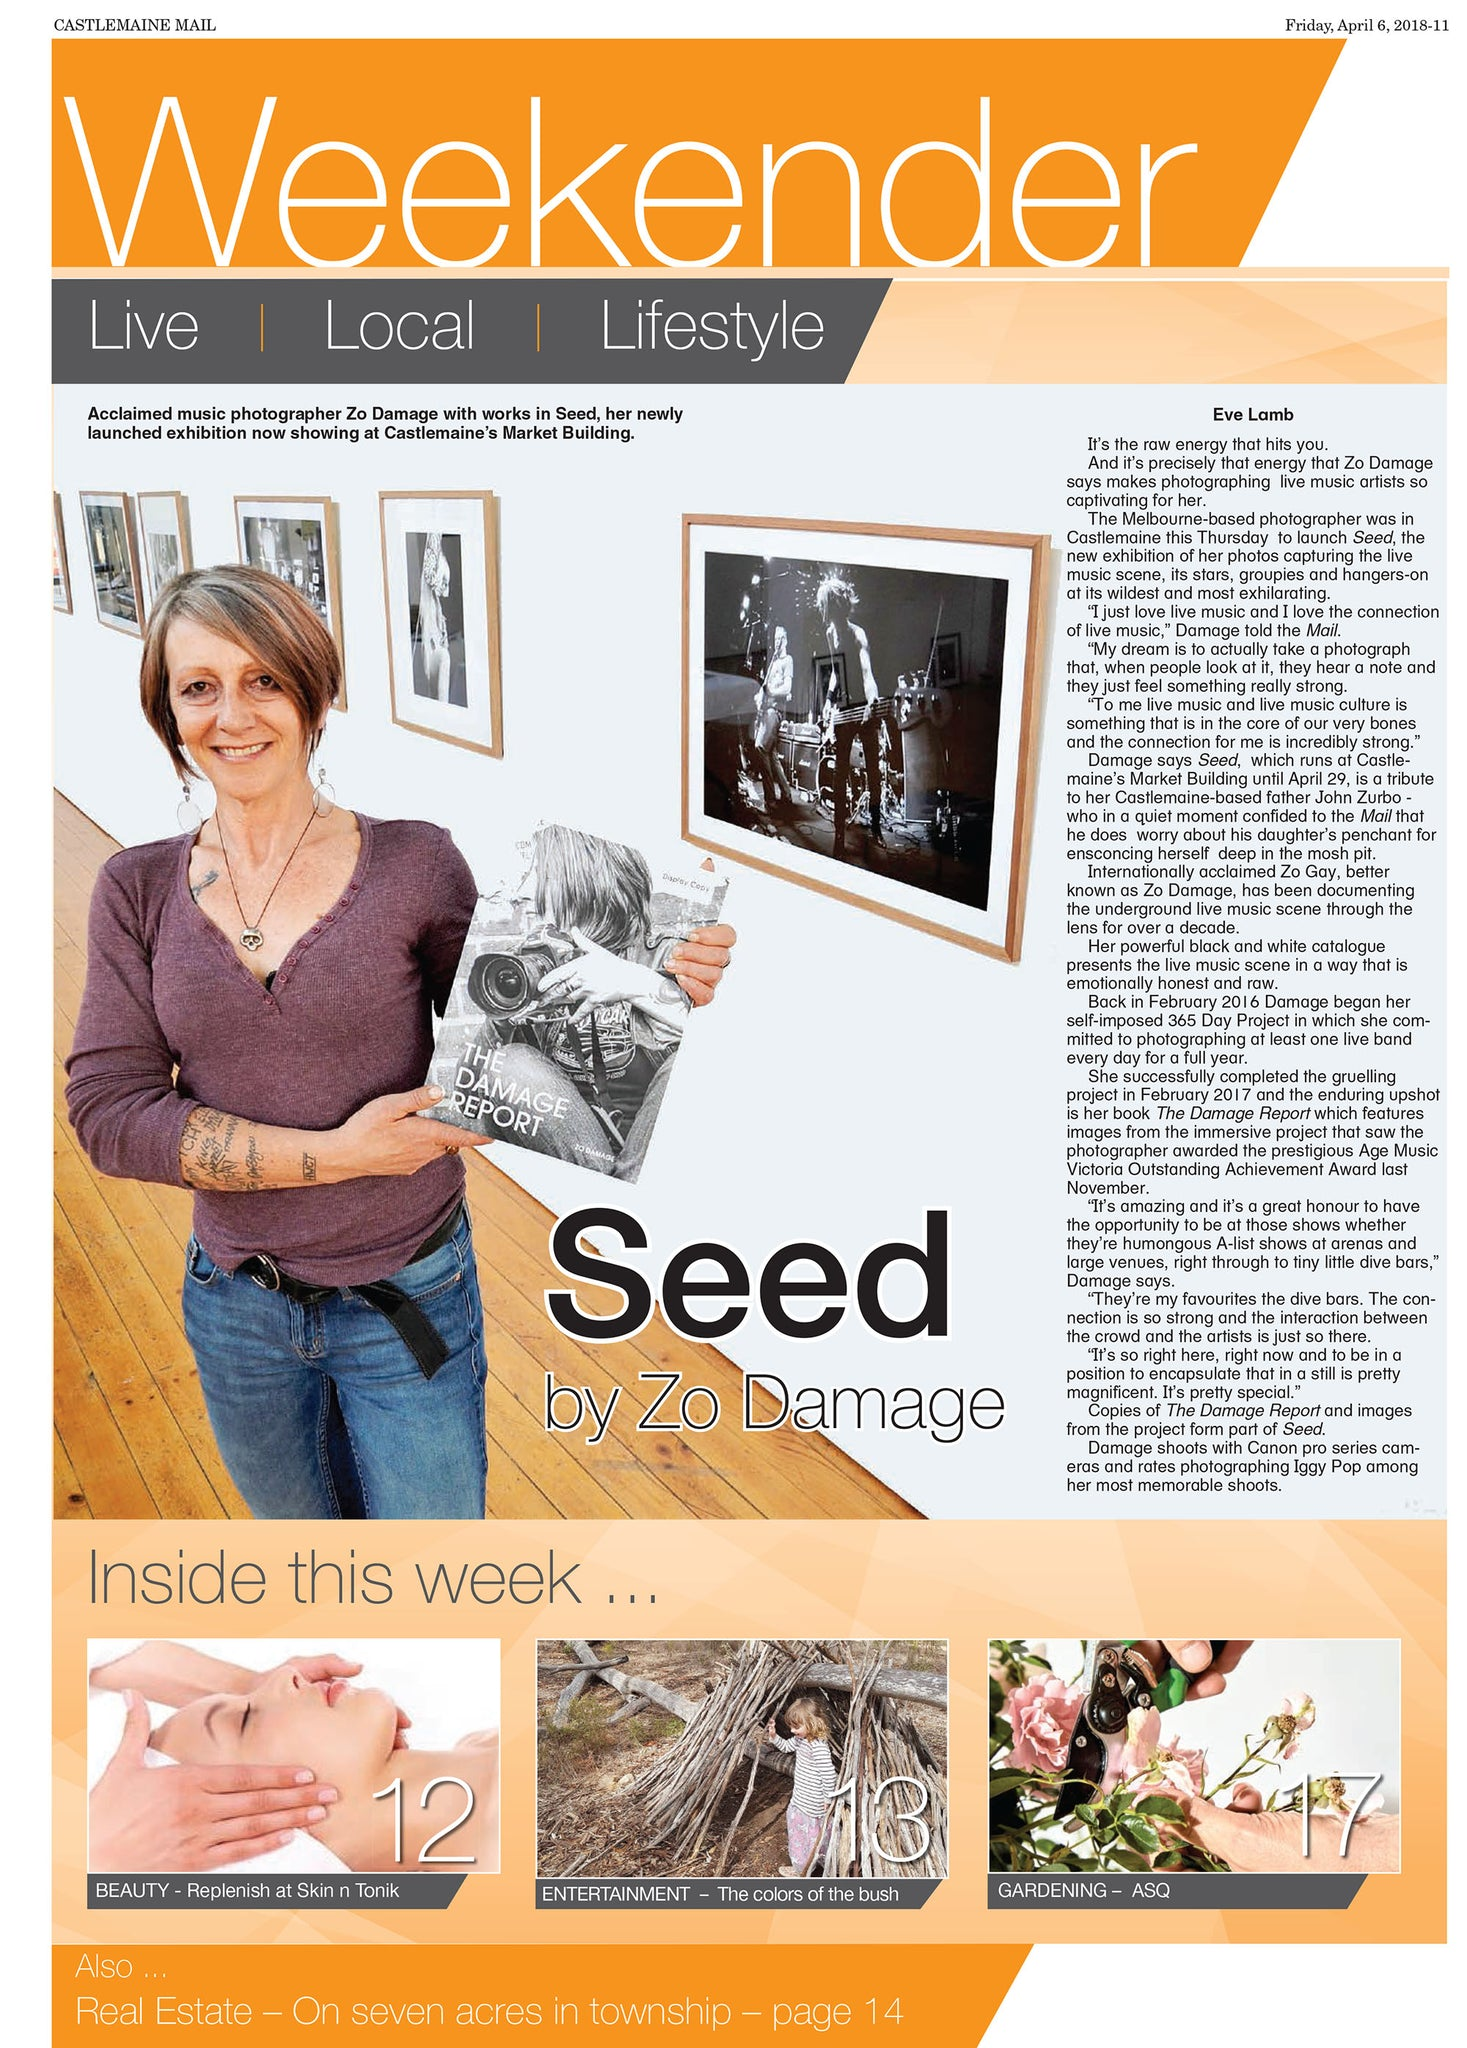 Eve Lamb (Castlemaine Mail) on the Zo Damage SEED exhibition.